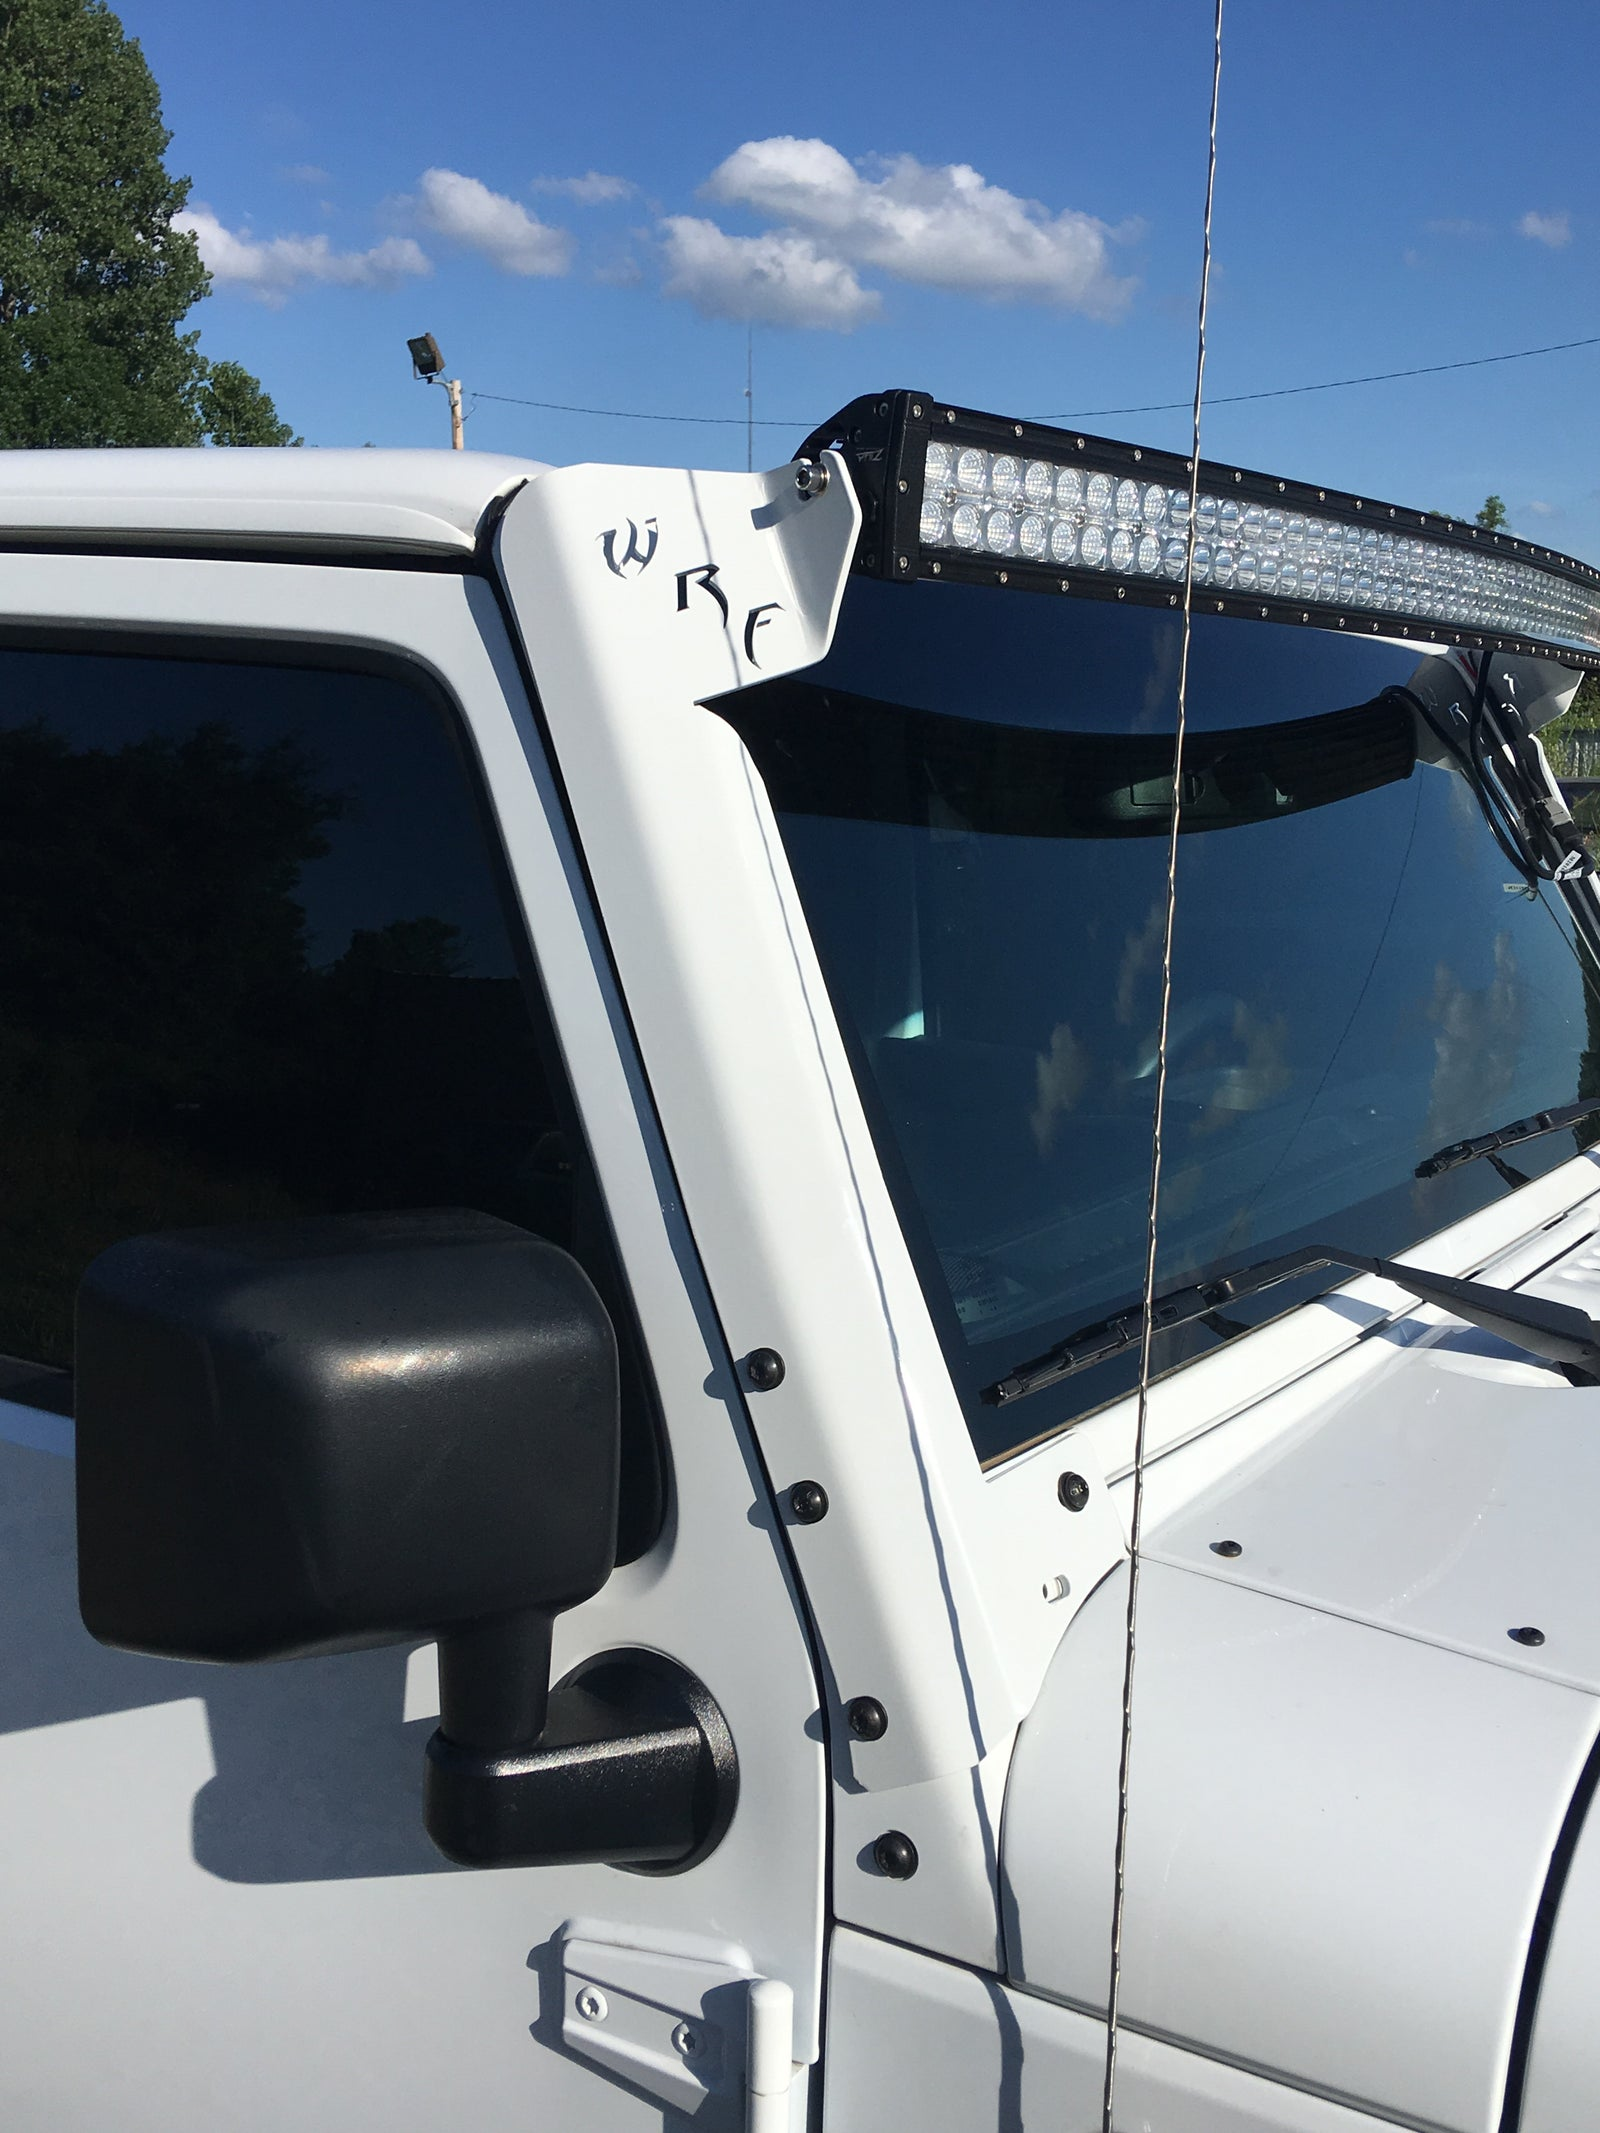 Jk Windshield Light Bar Brackets White Rhino Fabrication